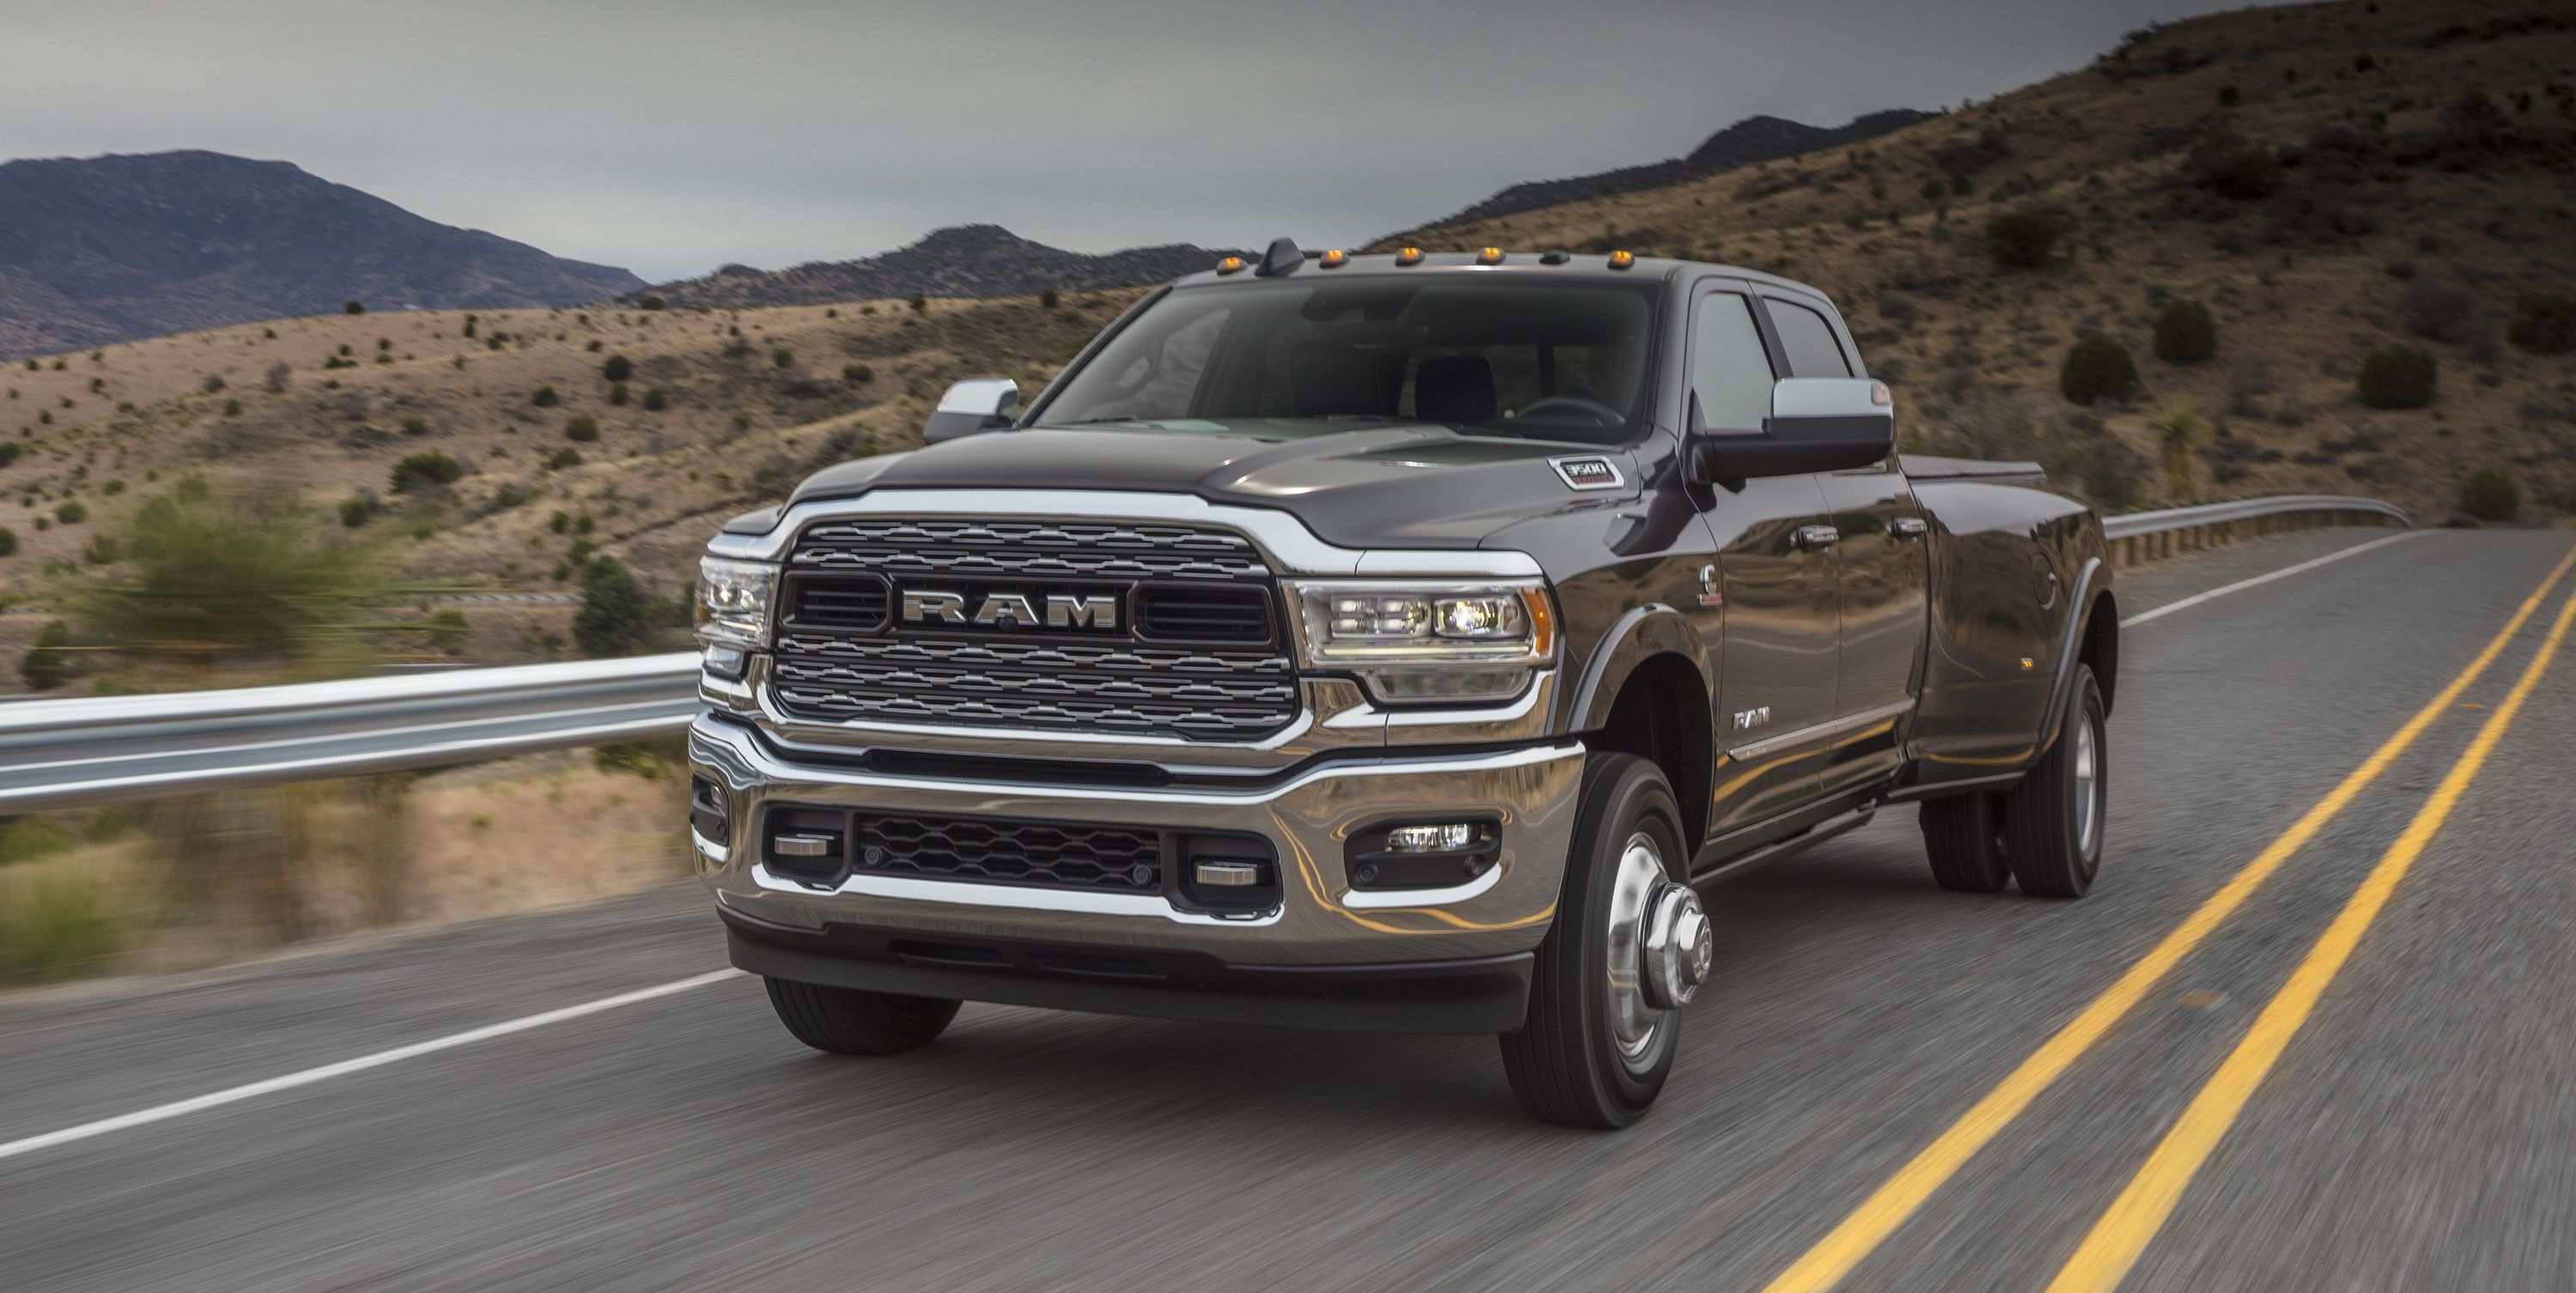 72 New Dodge Laramie 2020 Price and Review for Dodge Laramie 2020